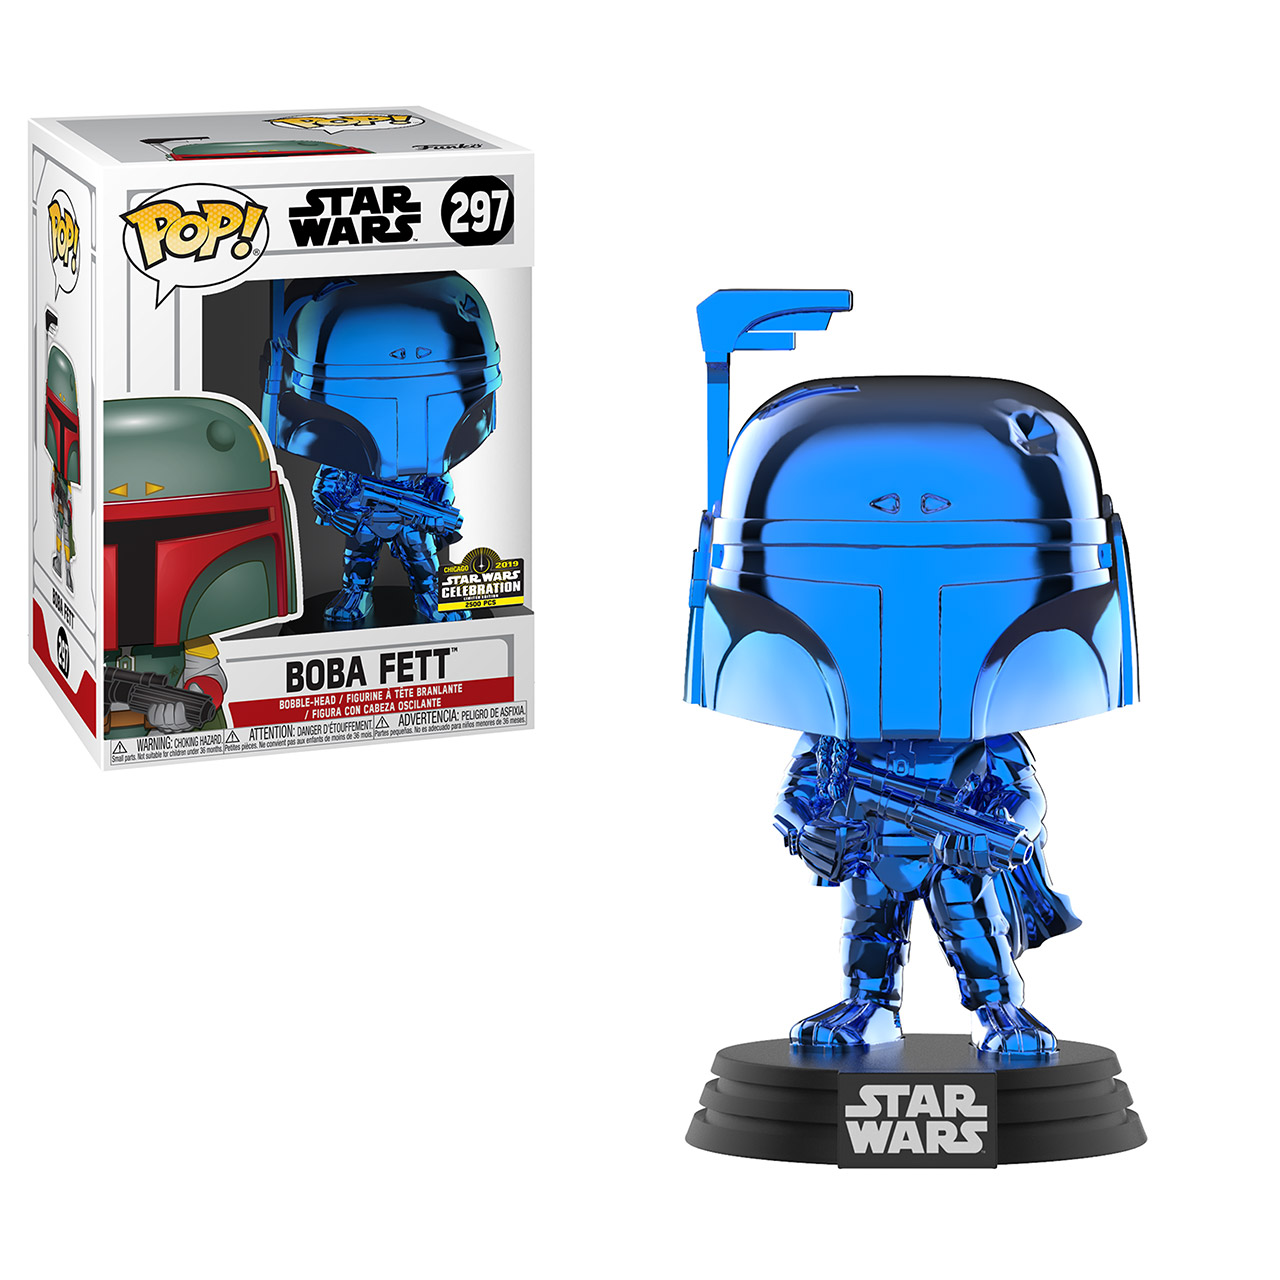 Star Wars Celebration 2019 Funko Exclusive POP 297